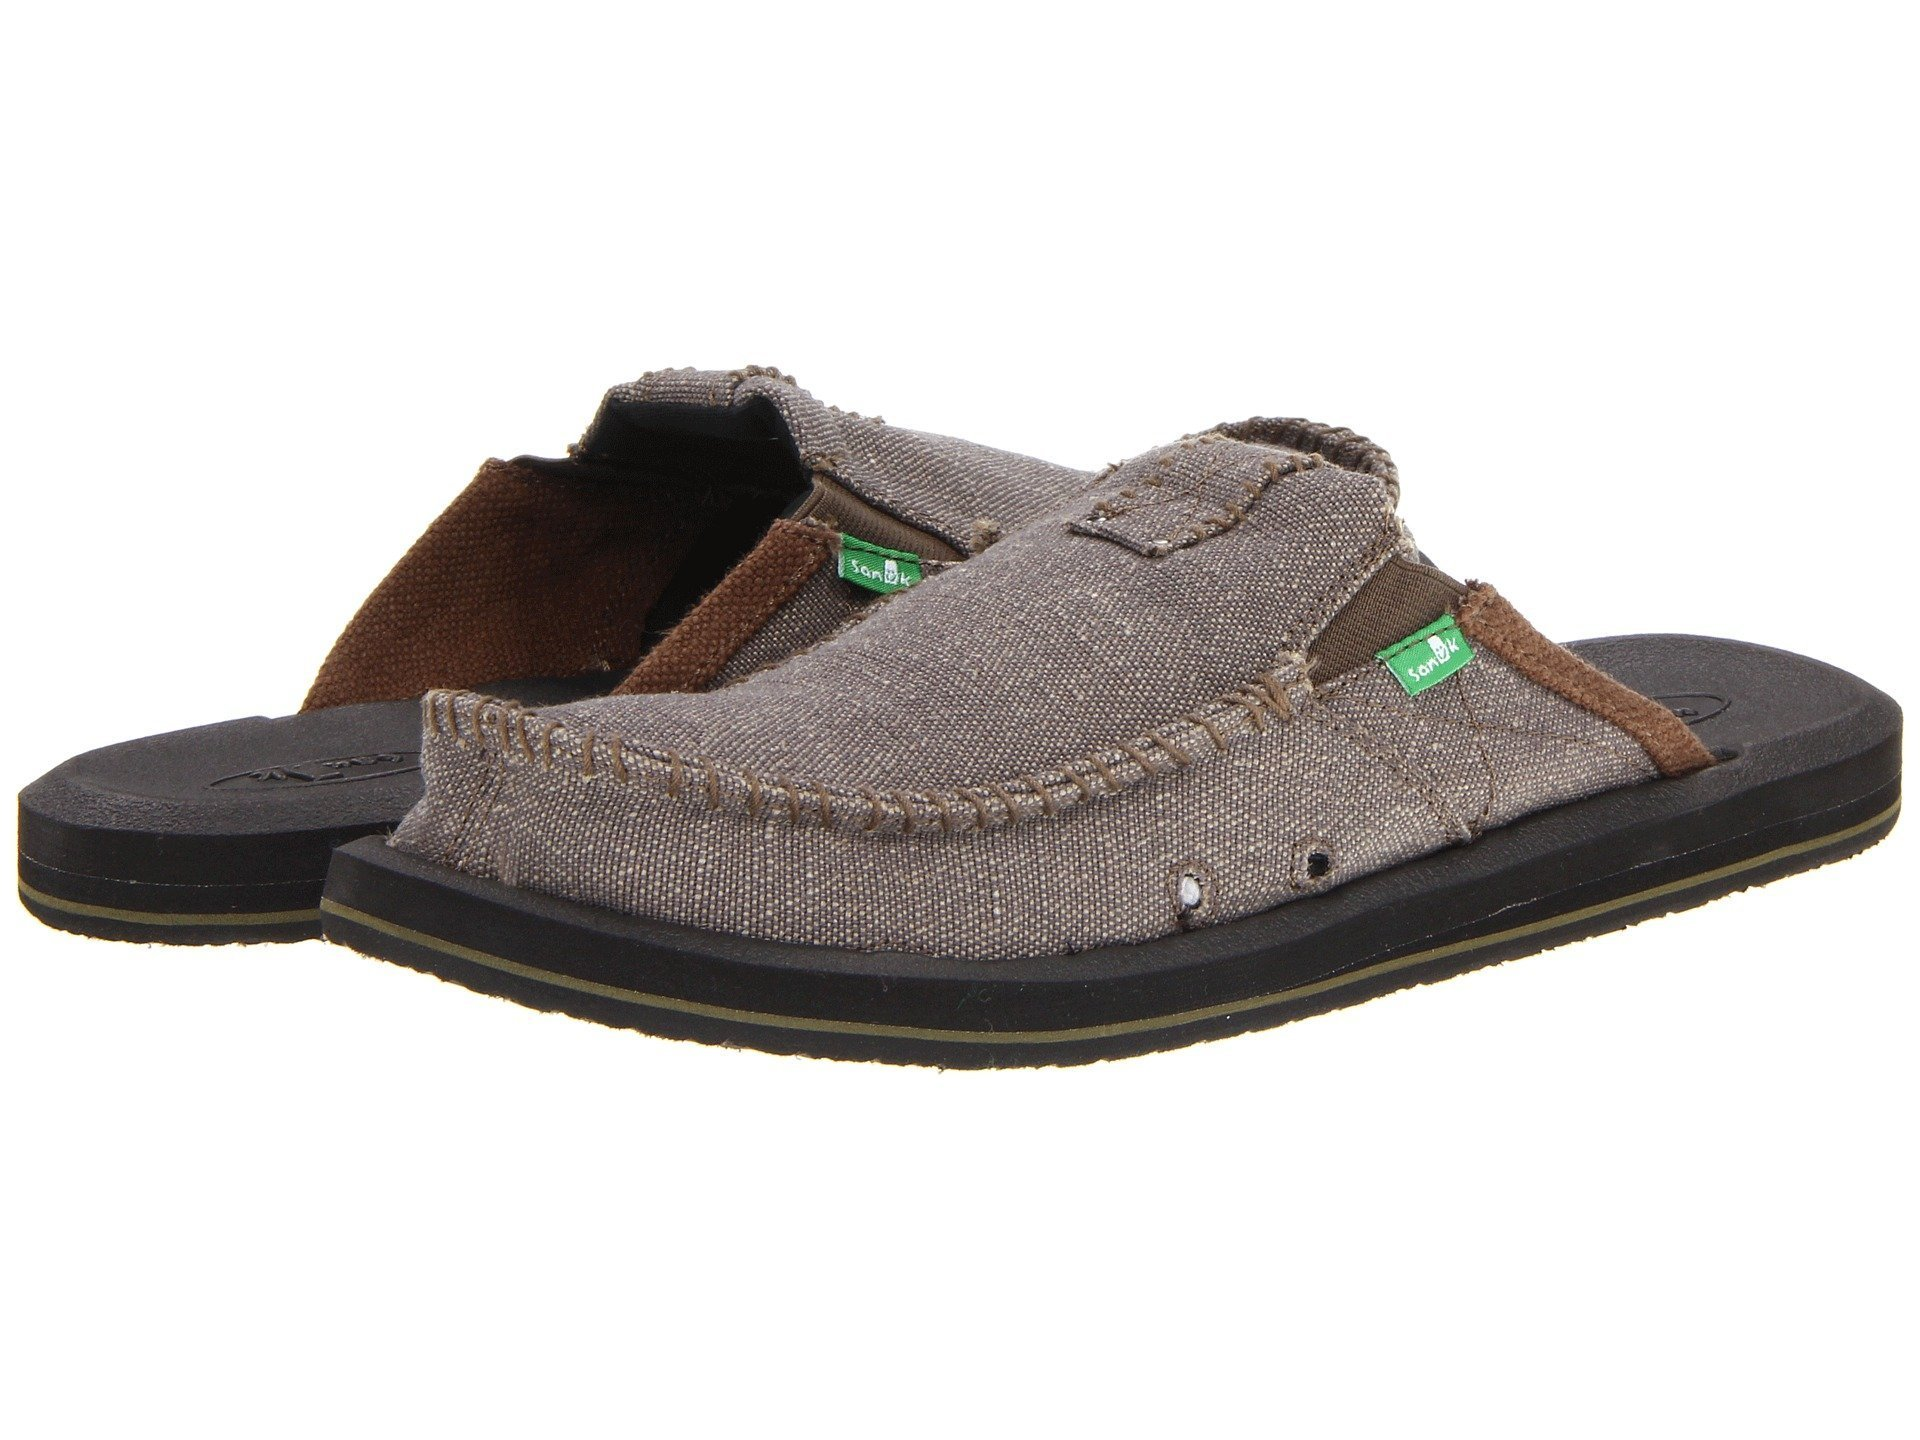 Sanuk Men's You Got My Back II Slip On, Army, 11 M US